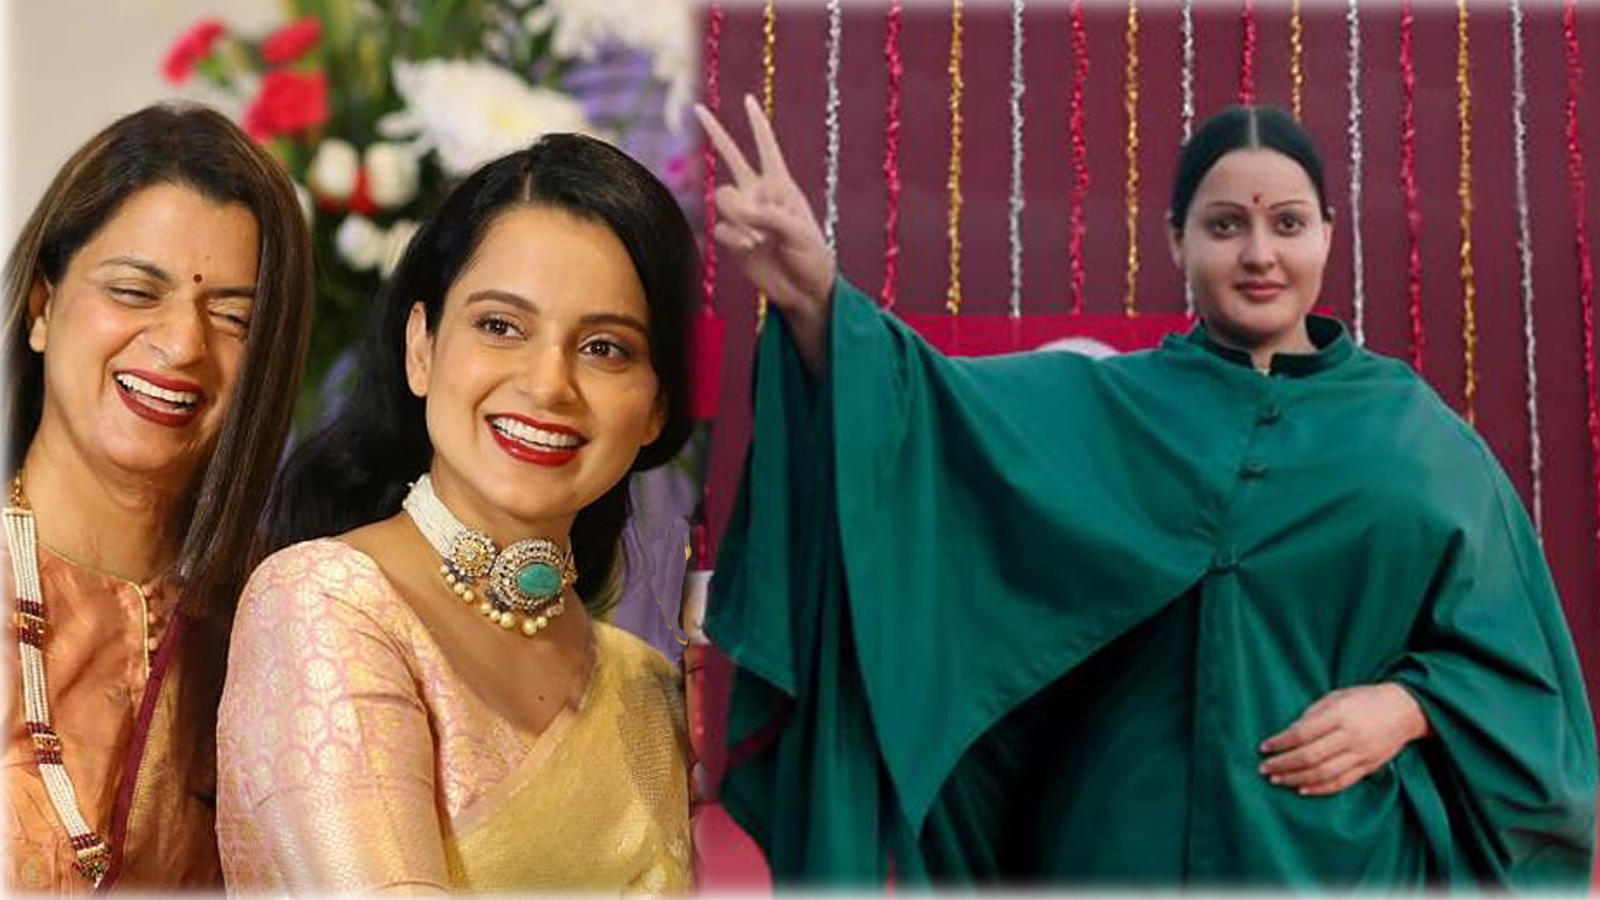 Kangana Ranaut's sister Rangoli Chandel defends actress' 'Thalaivi' look, slams netizens for trolling her